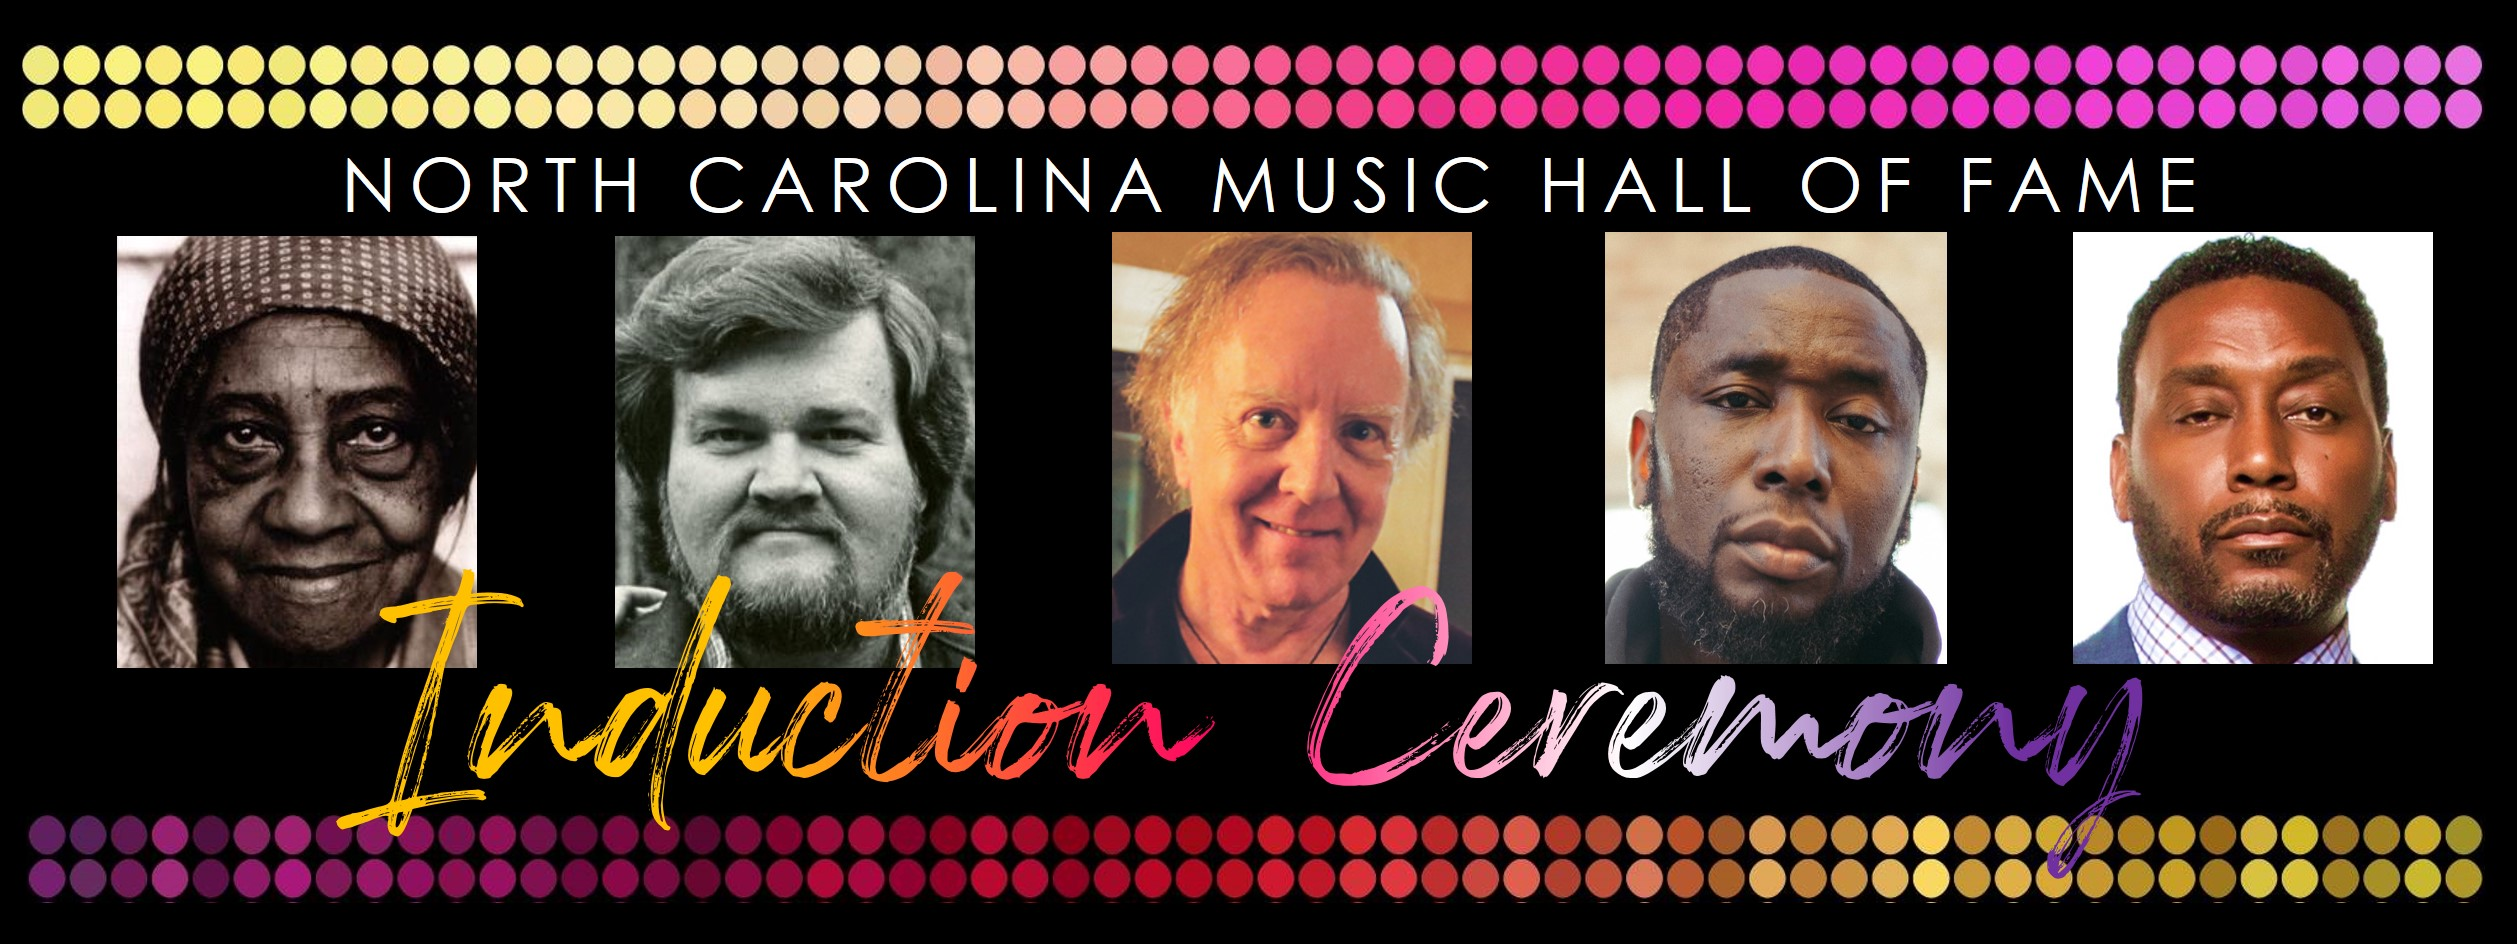 North Carolina Music Hall of Fame Induction Ceremony